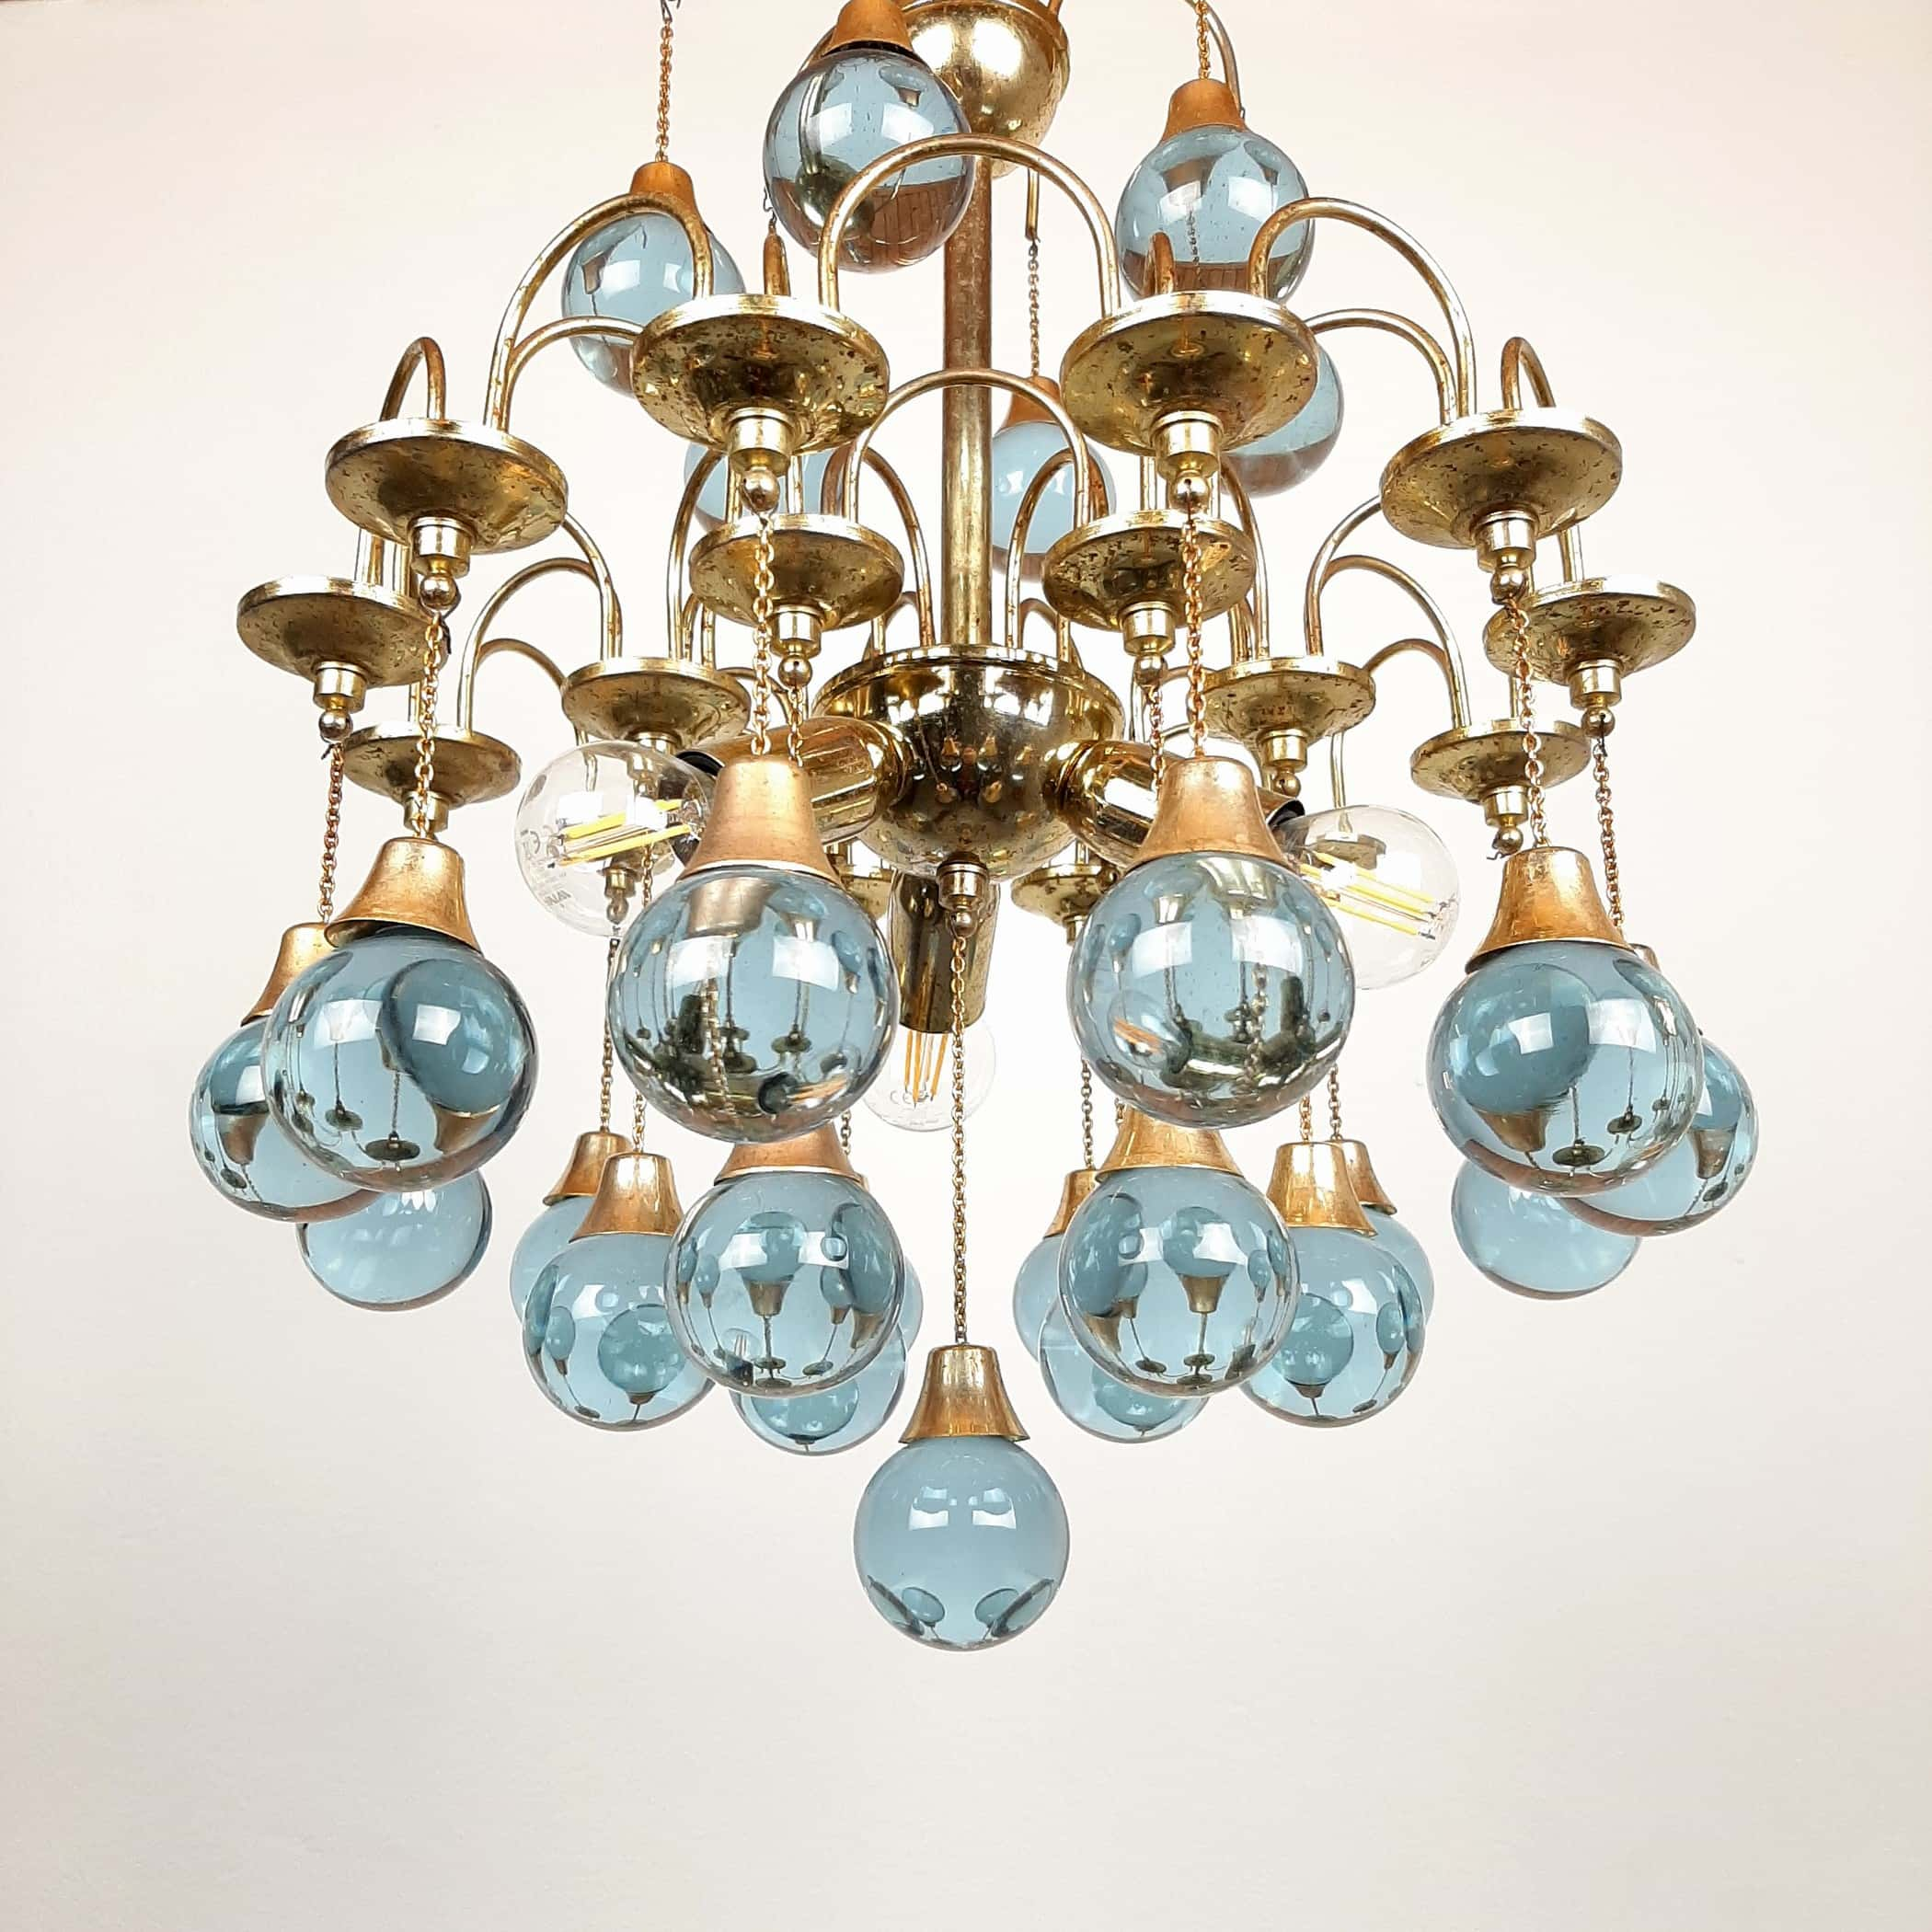 Vintage cascade murano glass chandelier Italy 1960s Brass and 25 murano balls